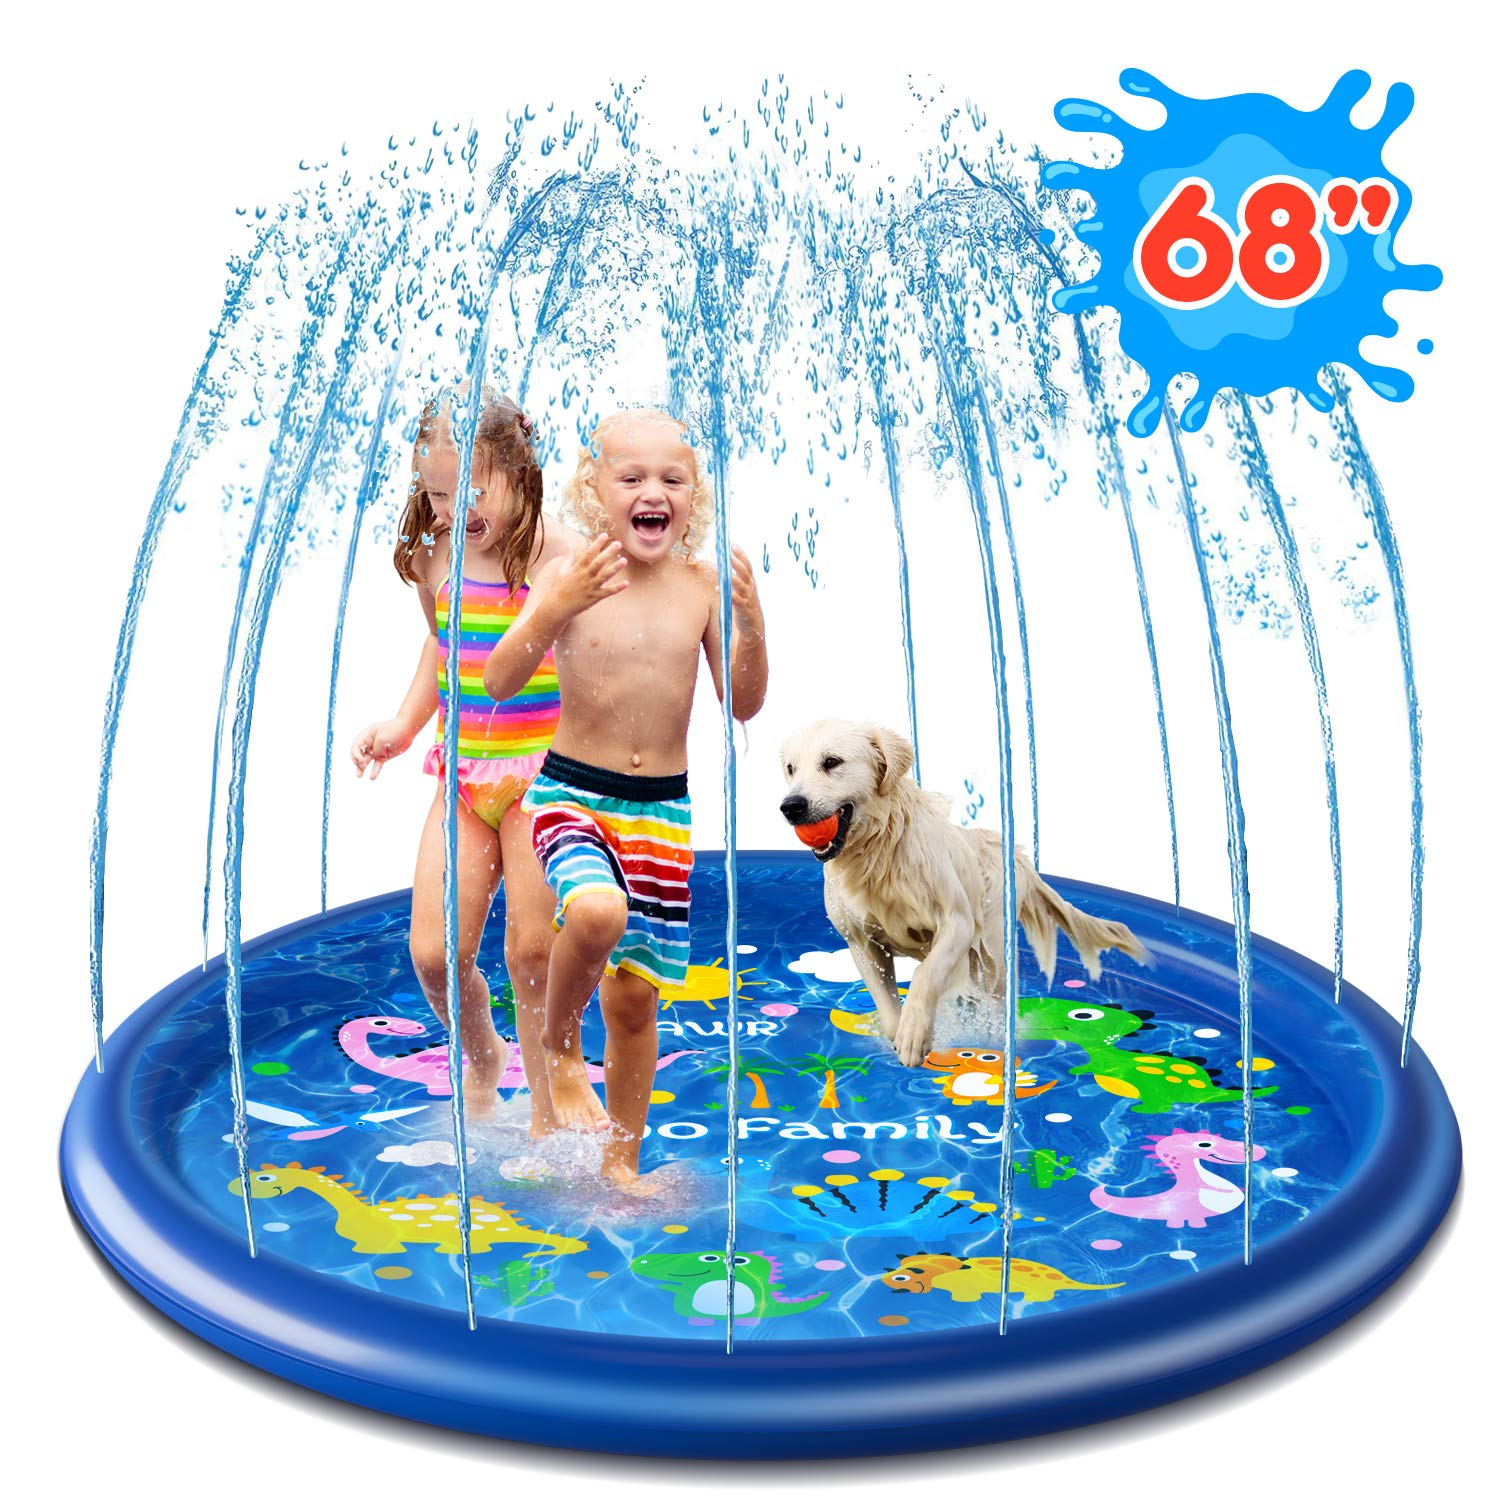 """Ohuhu Splash Sprinkler Pad for Kids Toddlers, 68"""" Splash Play Mat, Outdoor Inflatable Water Play Sprinkler Pad for Boys Girls Summer Spray Water Toys, Wading Swimming Pool for Babies and Toddlers"""